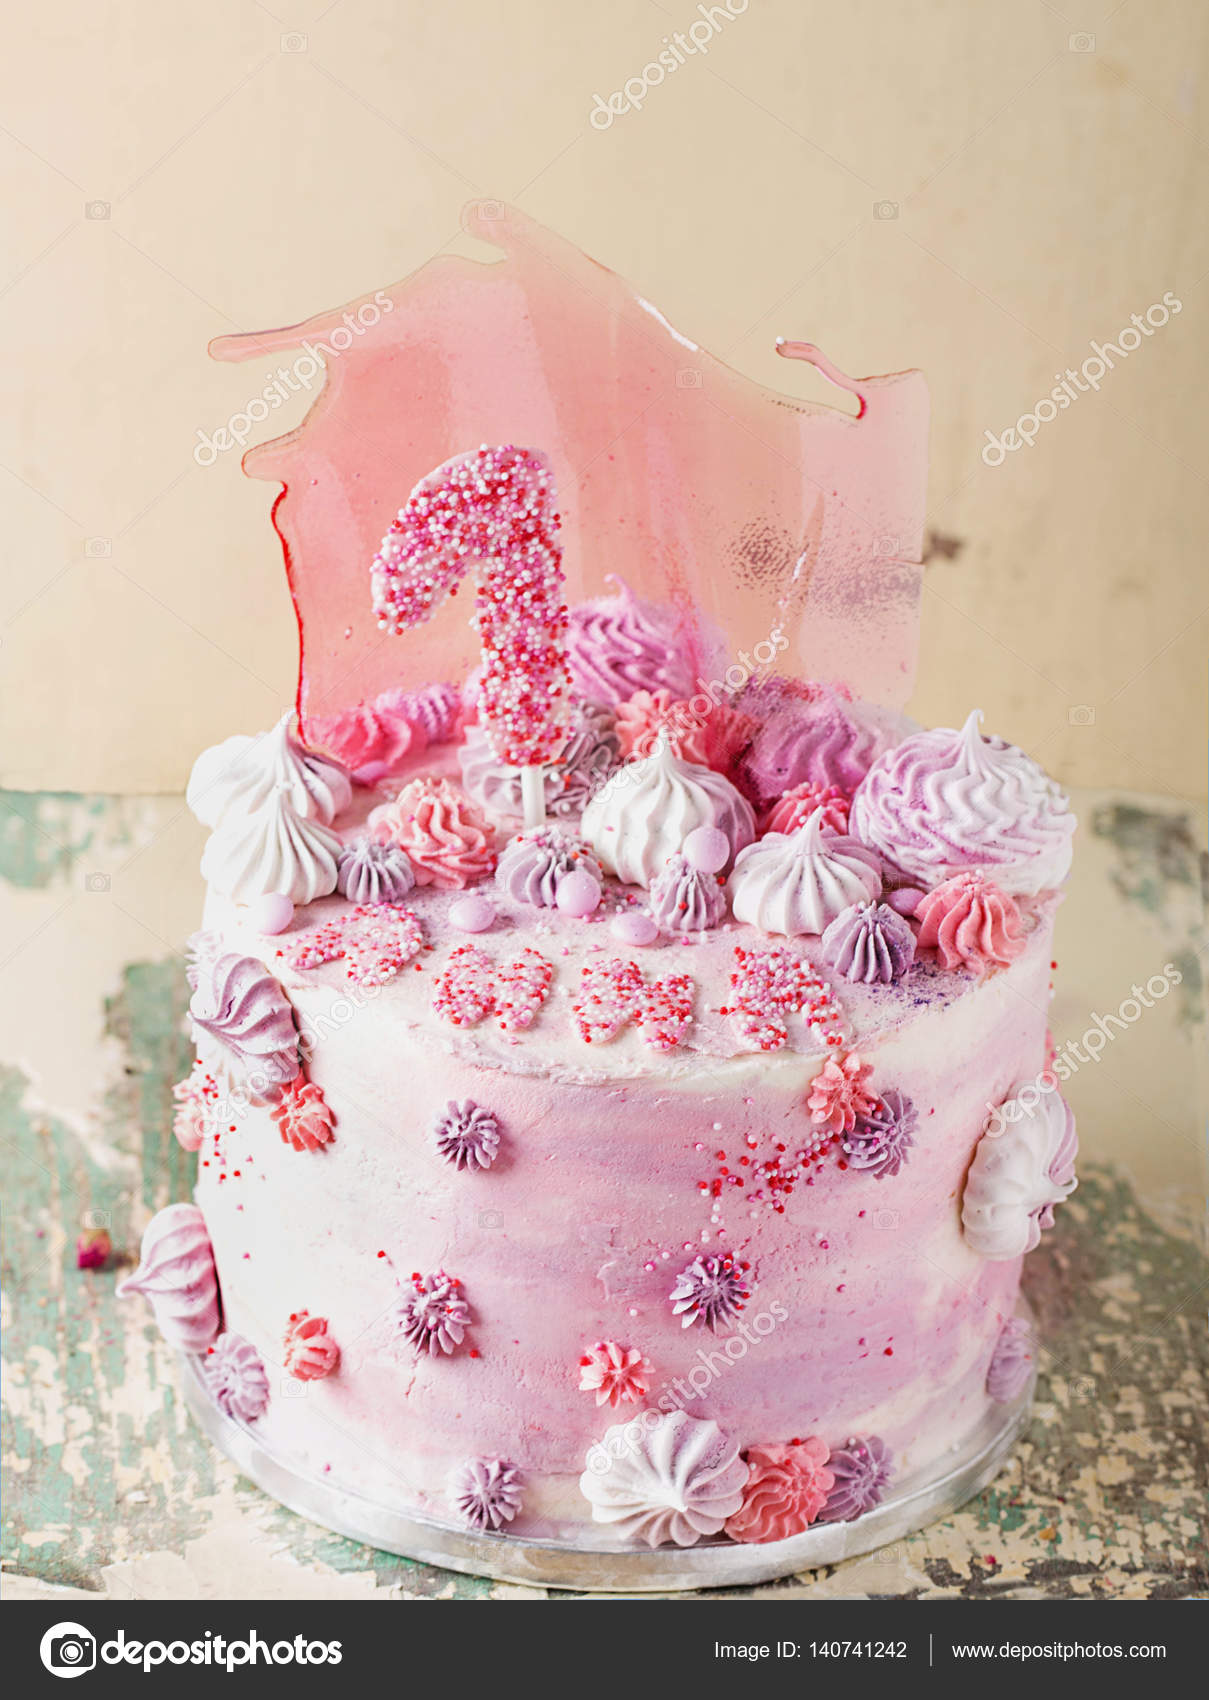 Incredible Pink And Violet Fancy Birthday Cake Stock Photo C Teelesswonder Funny Birthday Cards Online Elaedamsfinfo